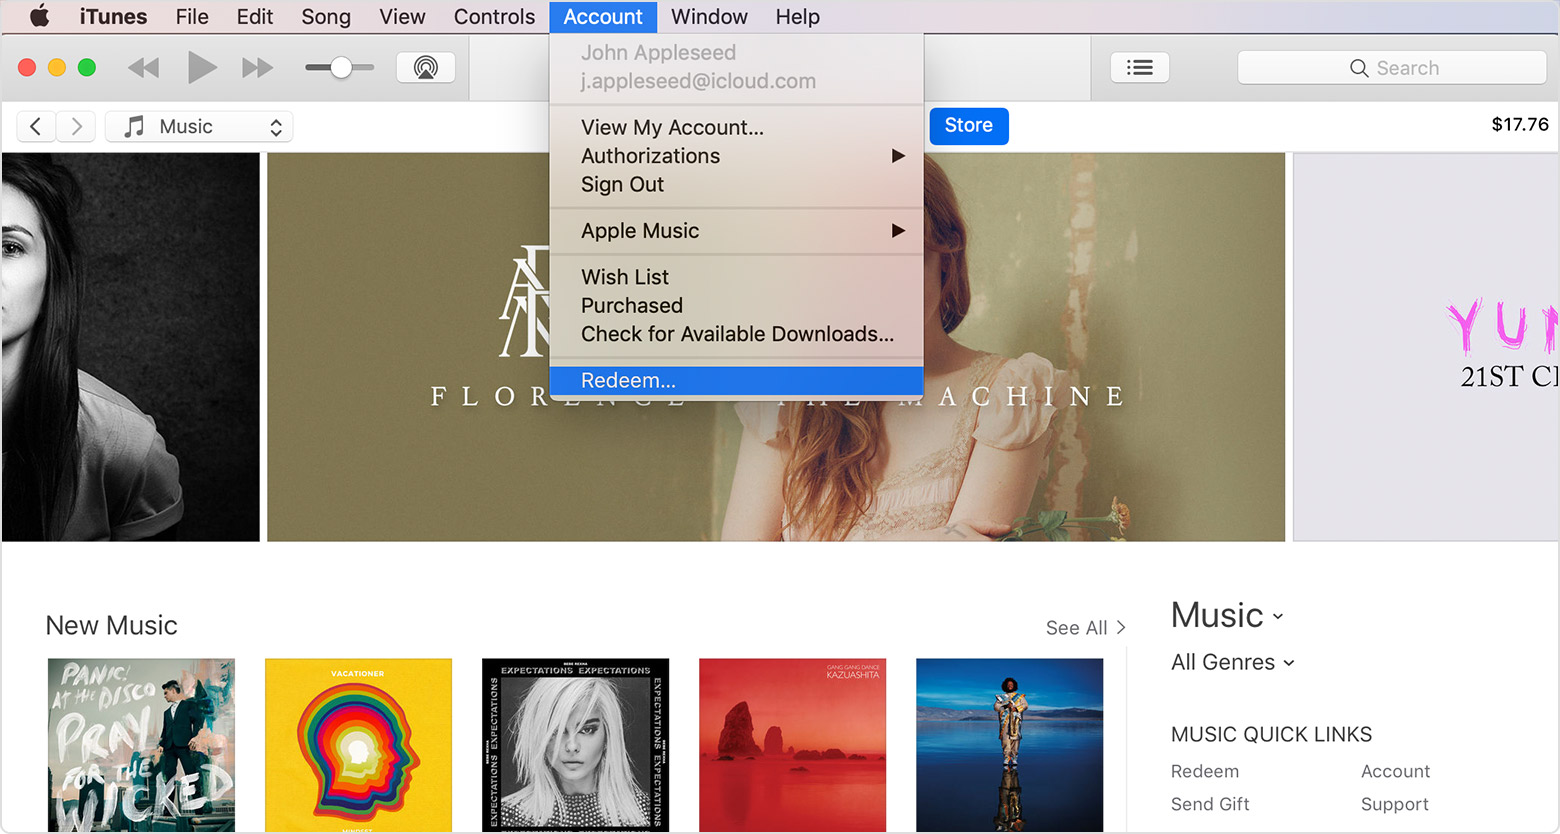 iTunes showing the Account menu.